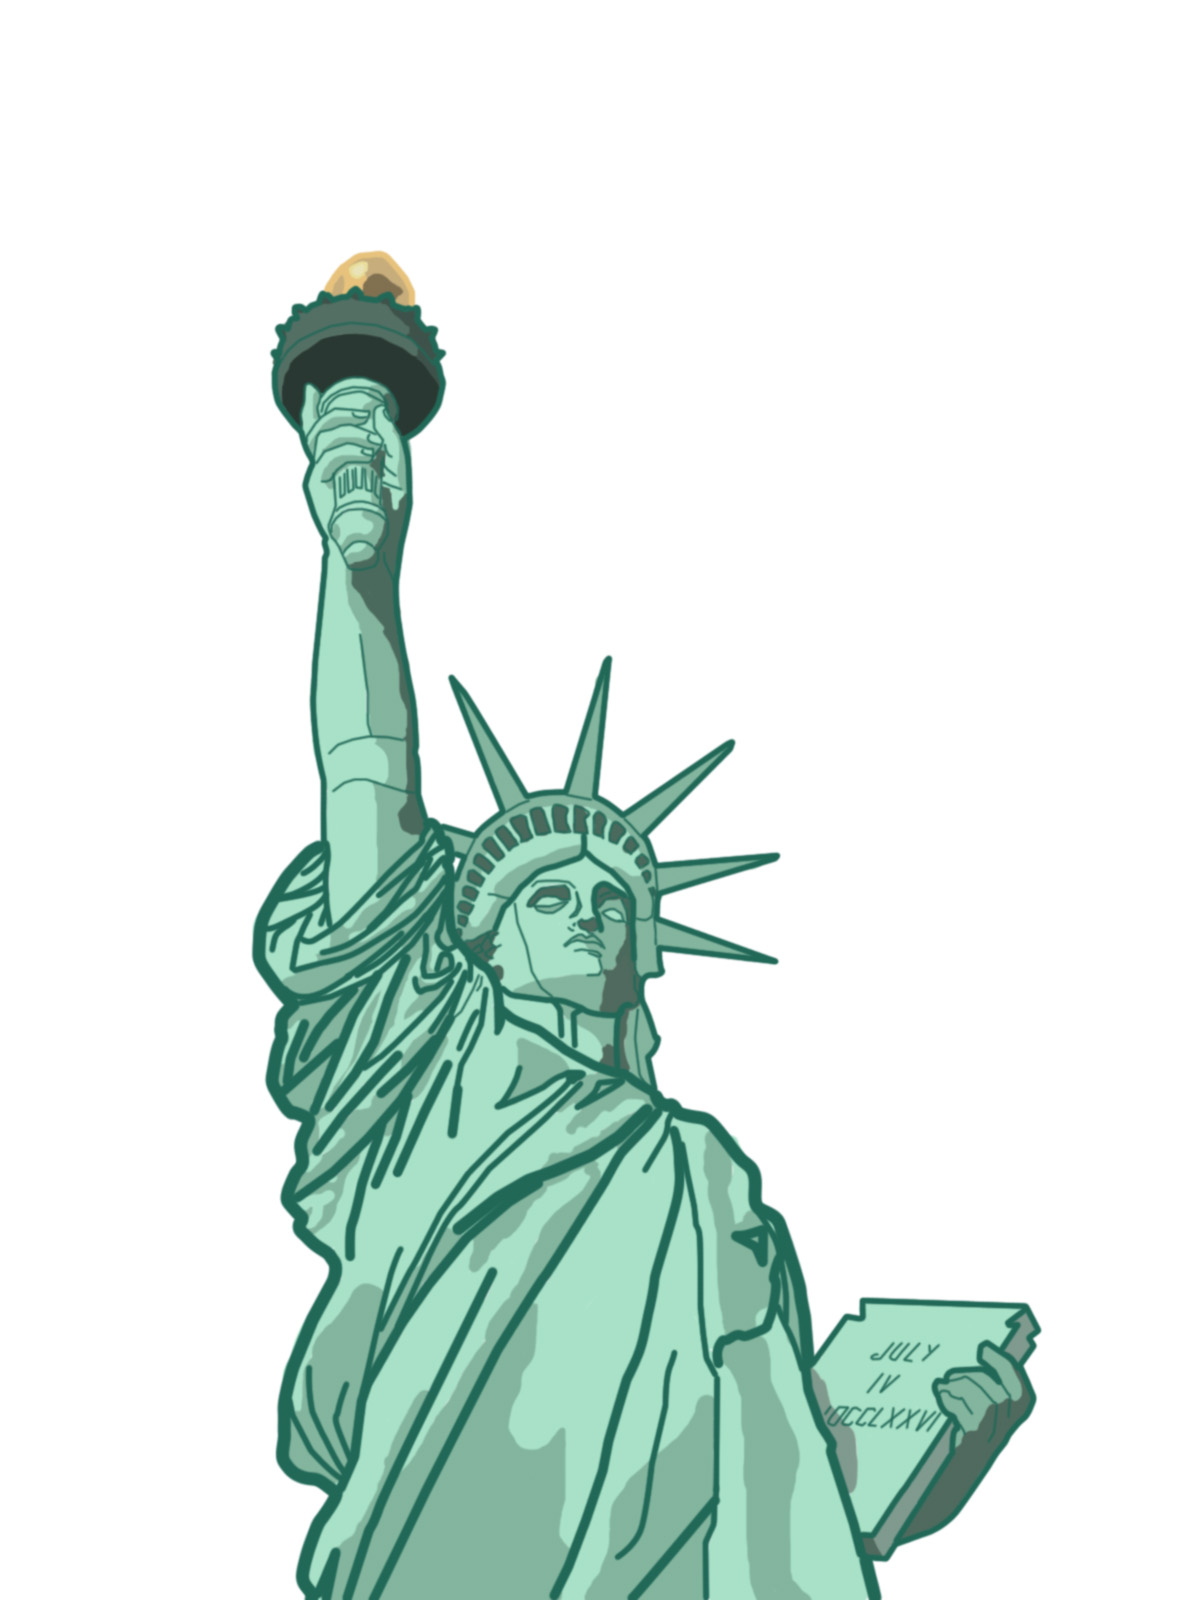 802 Statue Of Liberty free clipart.